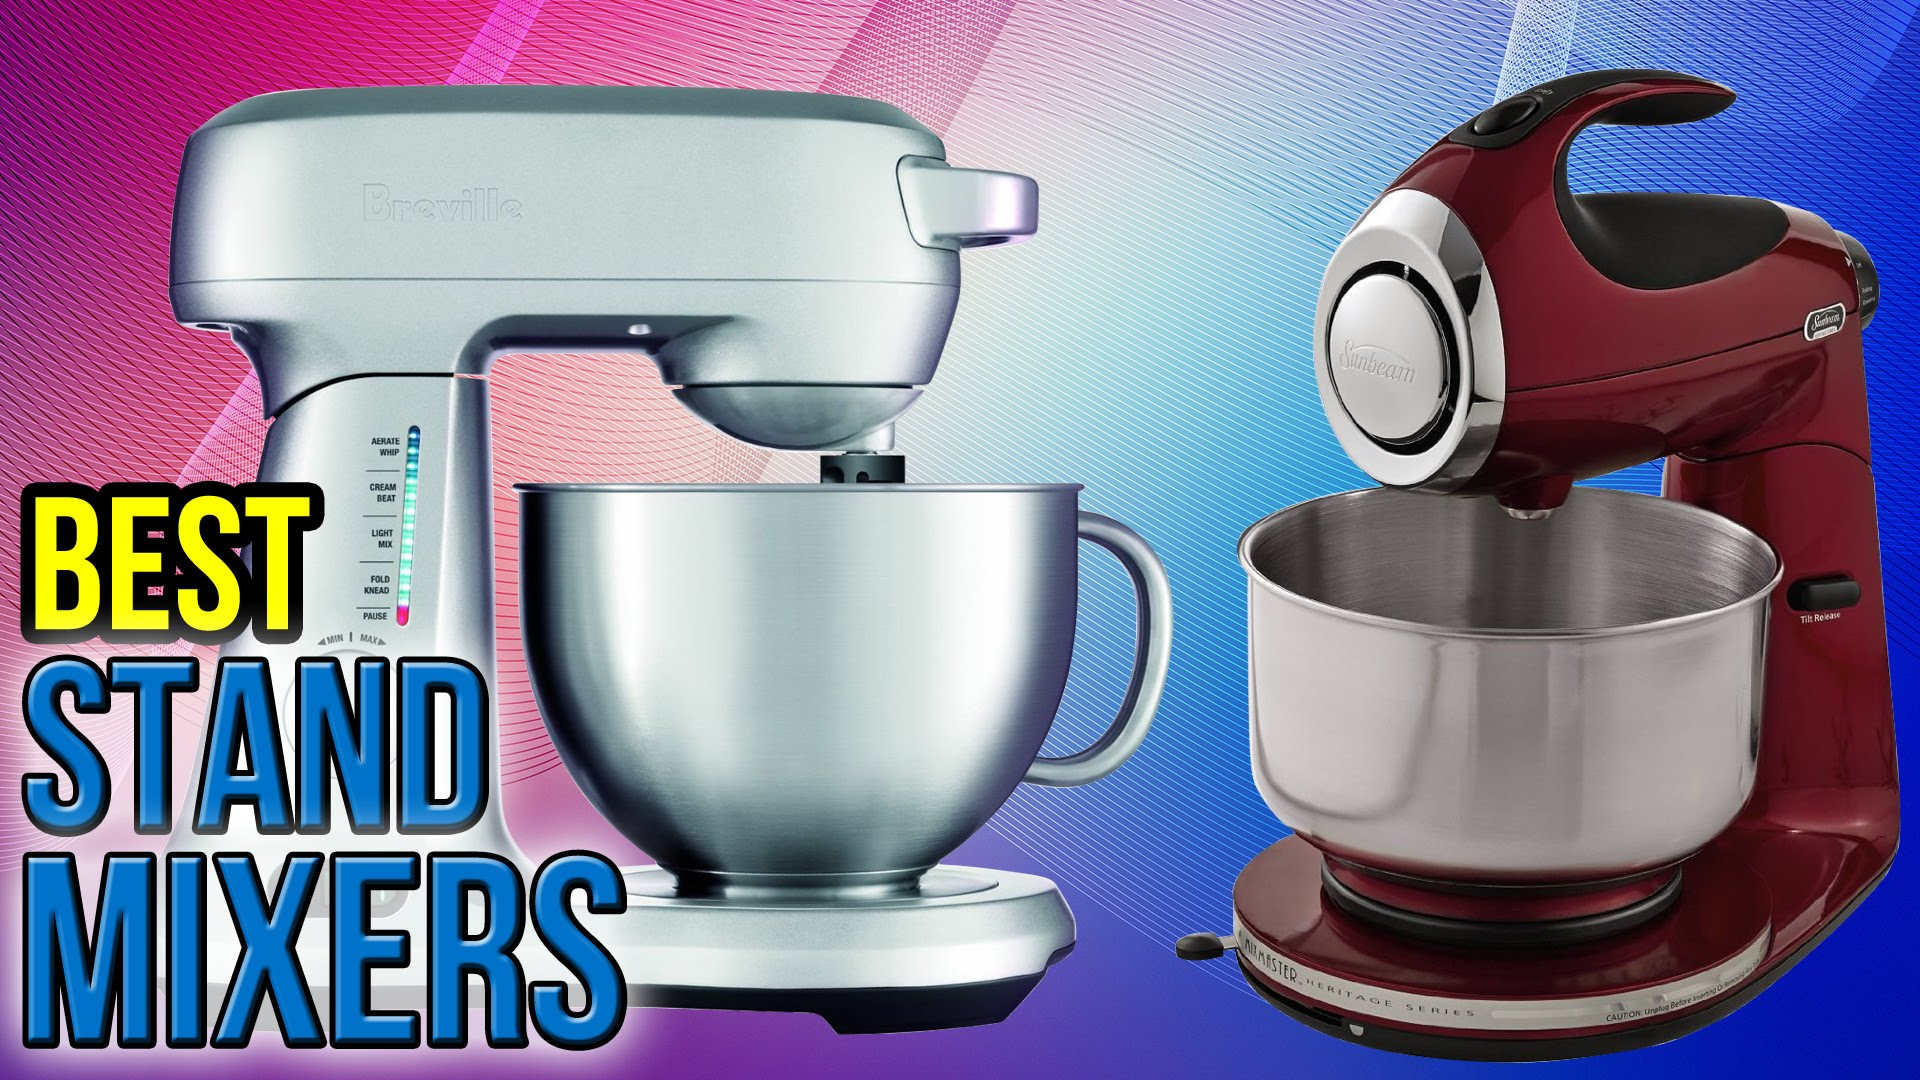 Best Stand Mixers on the Market